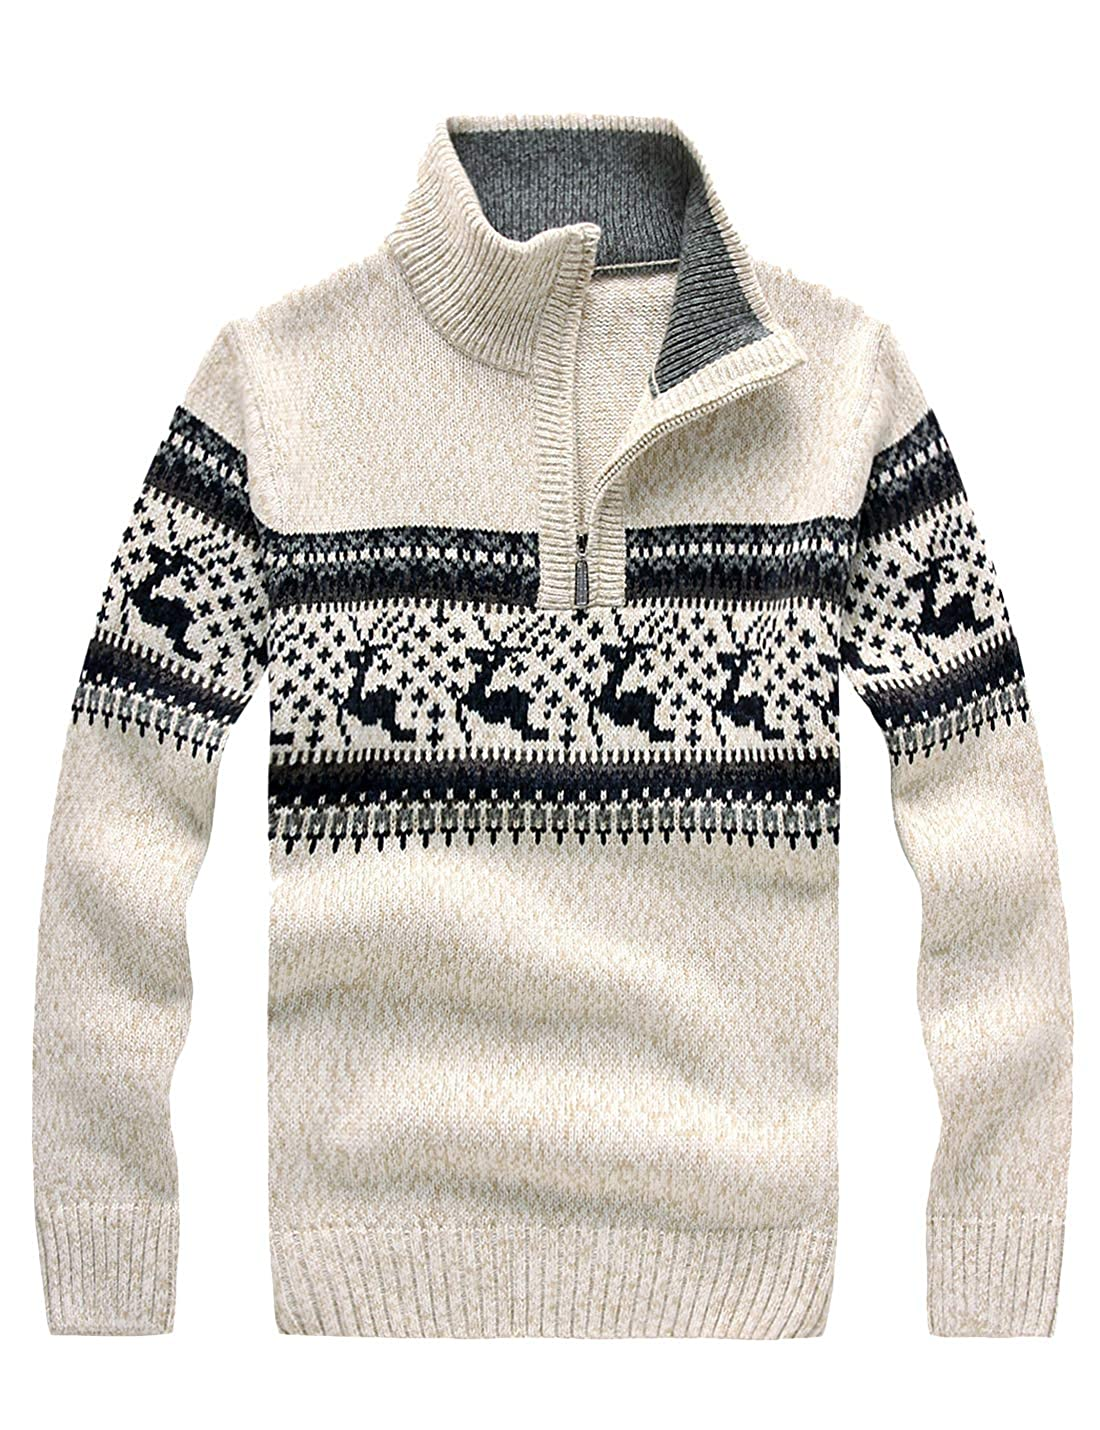 Lentta Mens Casual Half Zipper Stand Collar Printed Knitted Pullover Sweater